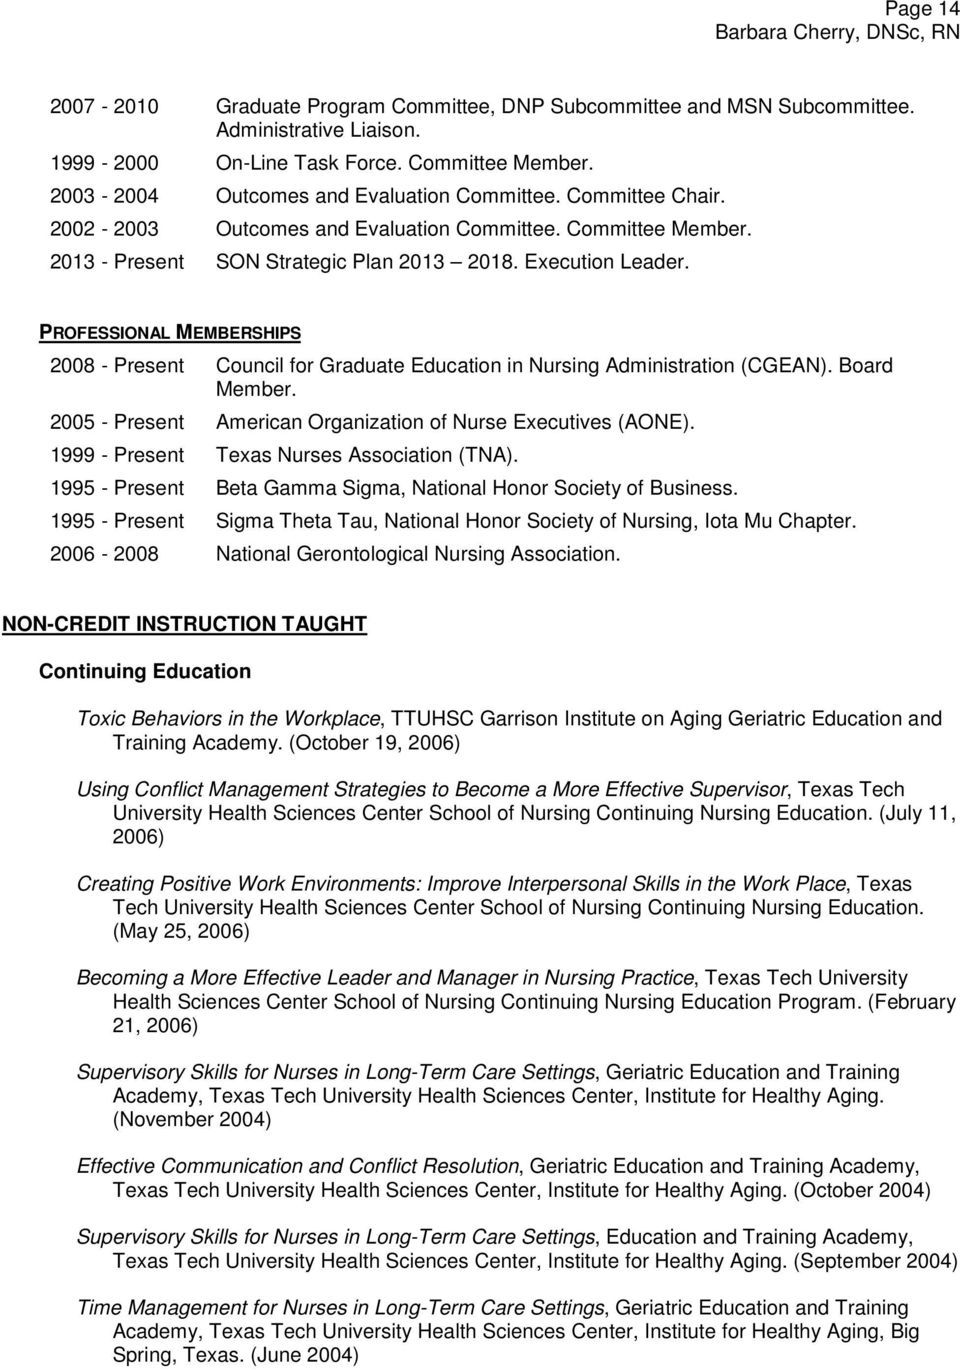 PROFESSIONAL MEMBERSHIPS 2008 - Present Council for Graduate Education in Nursing Administration (CGEAN). Board Member. 2005 - Present American Organization of Nurse Executives (AONE).